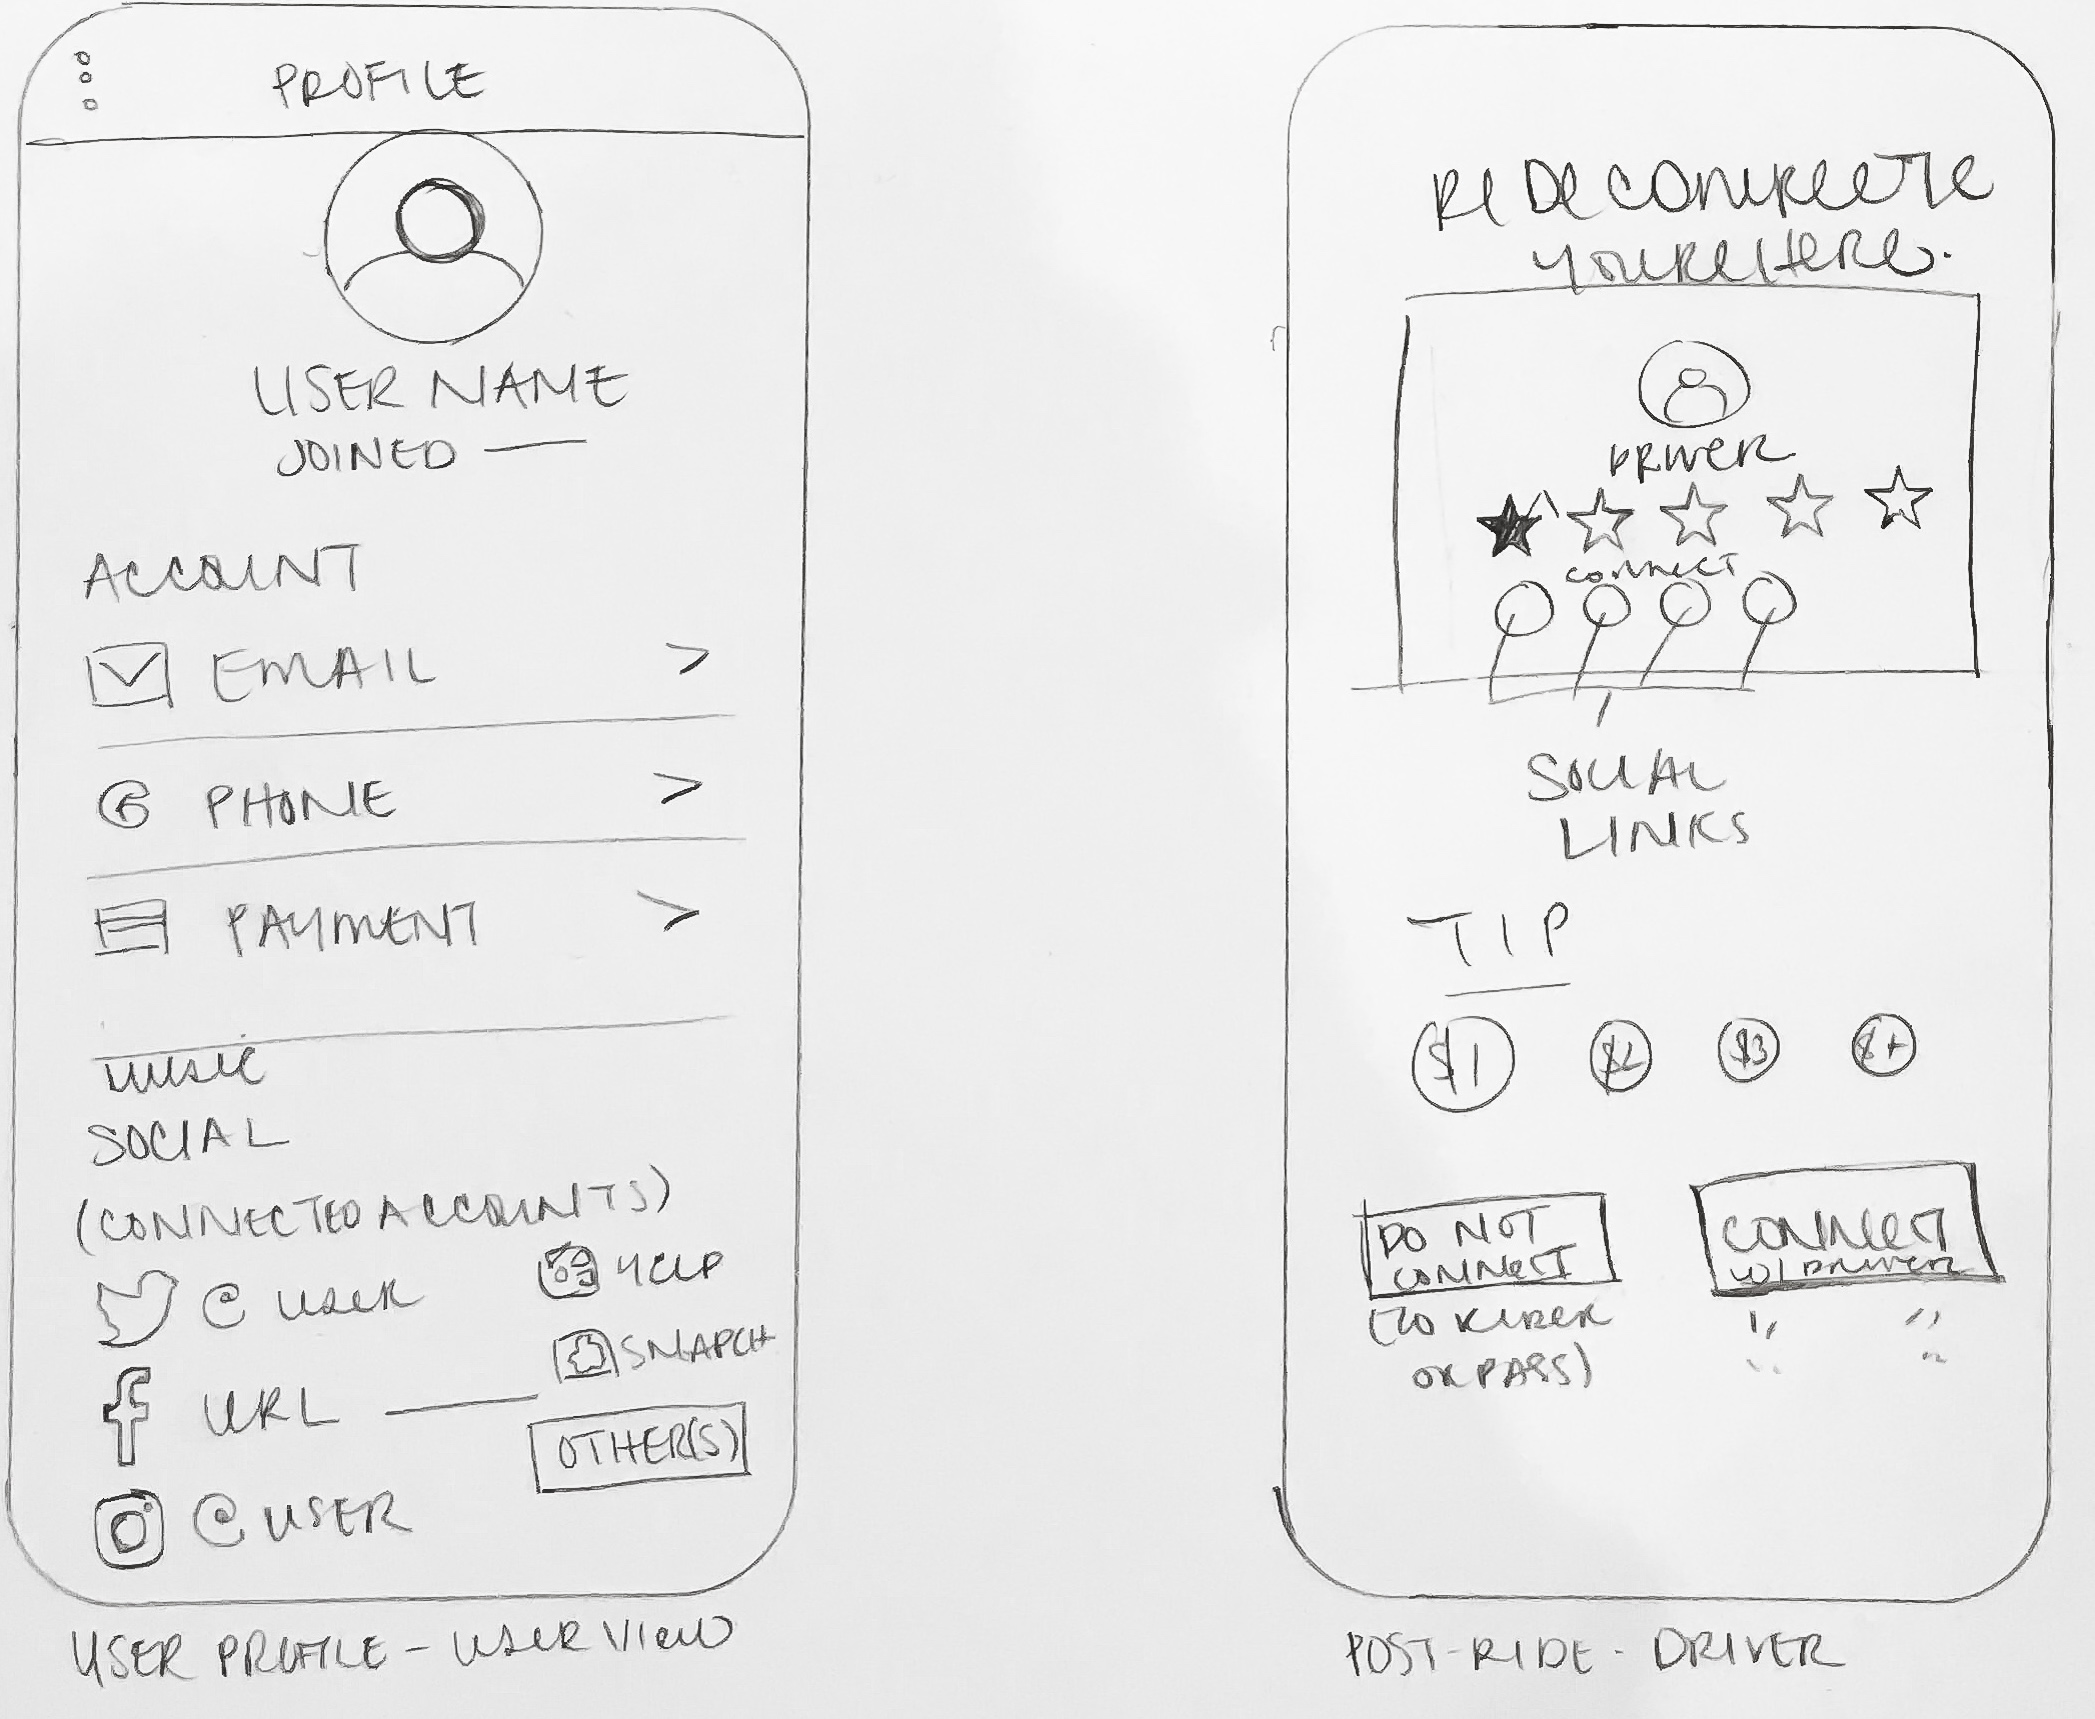 Lo-Fi Wireframes  - Logged in user view of profile + post-ride driver screen